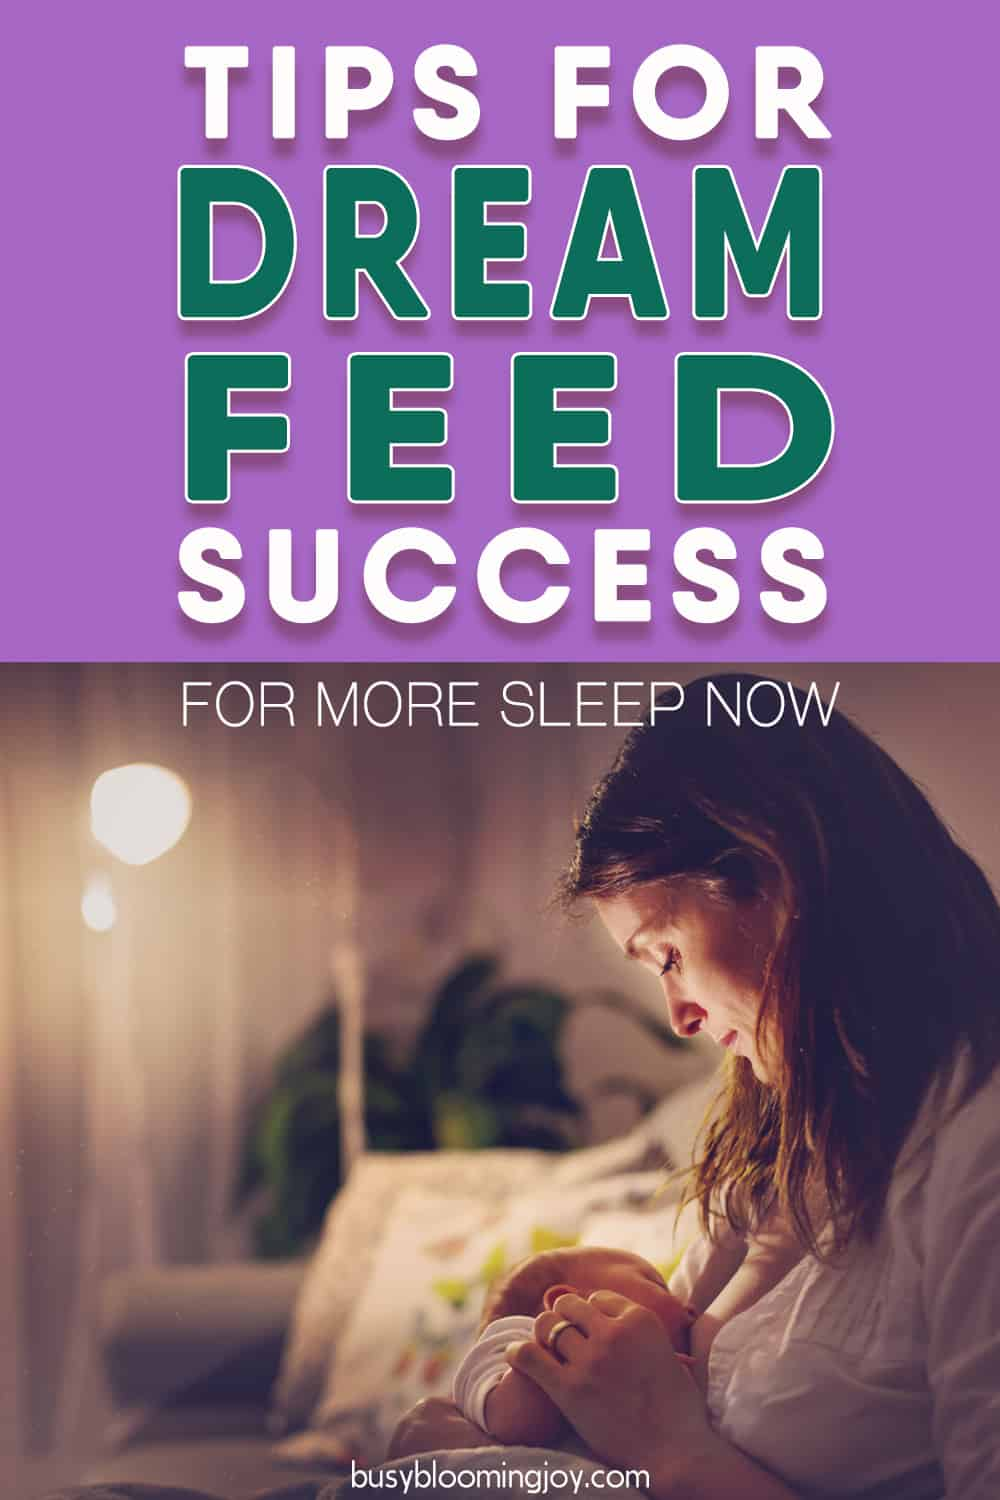 The Dream Feed: An insanely simple solution to dramatically more sleep